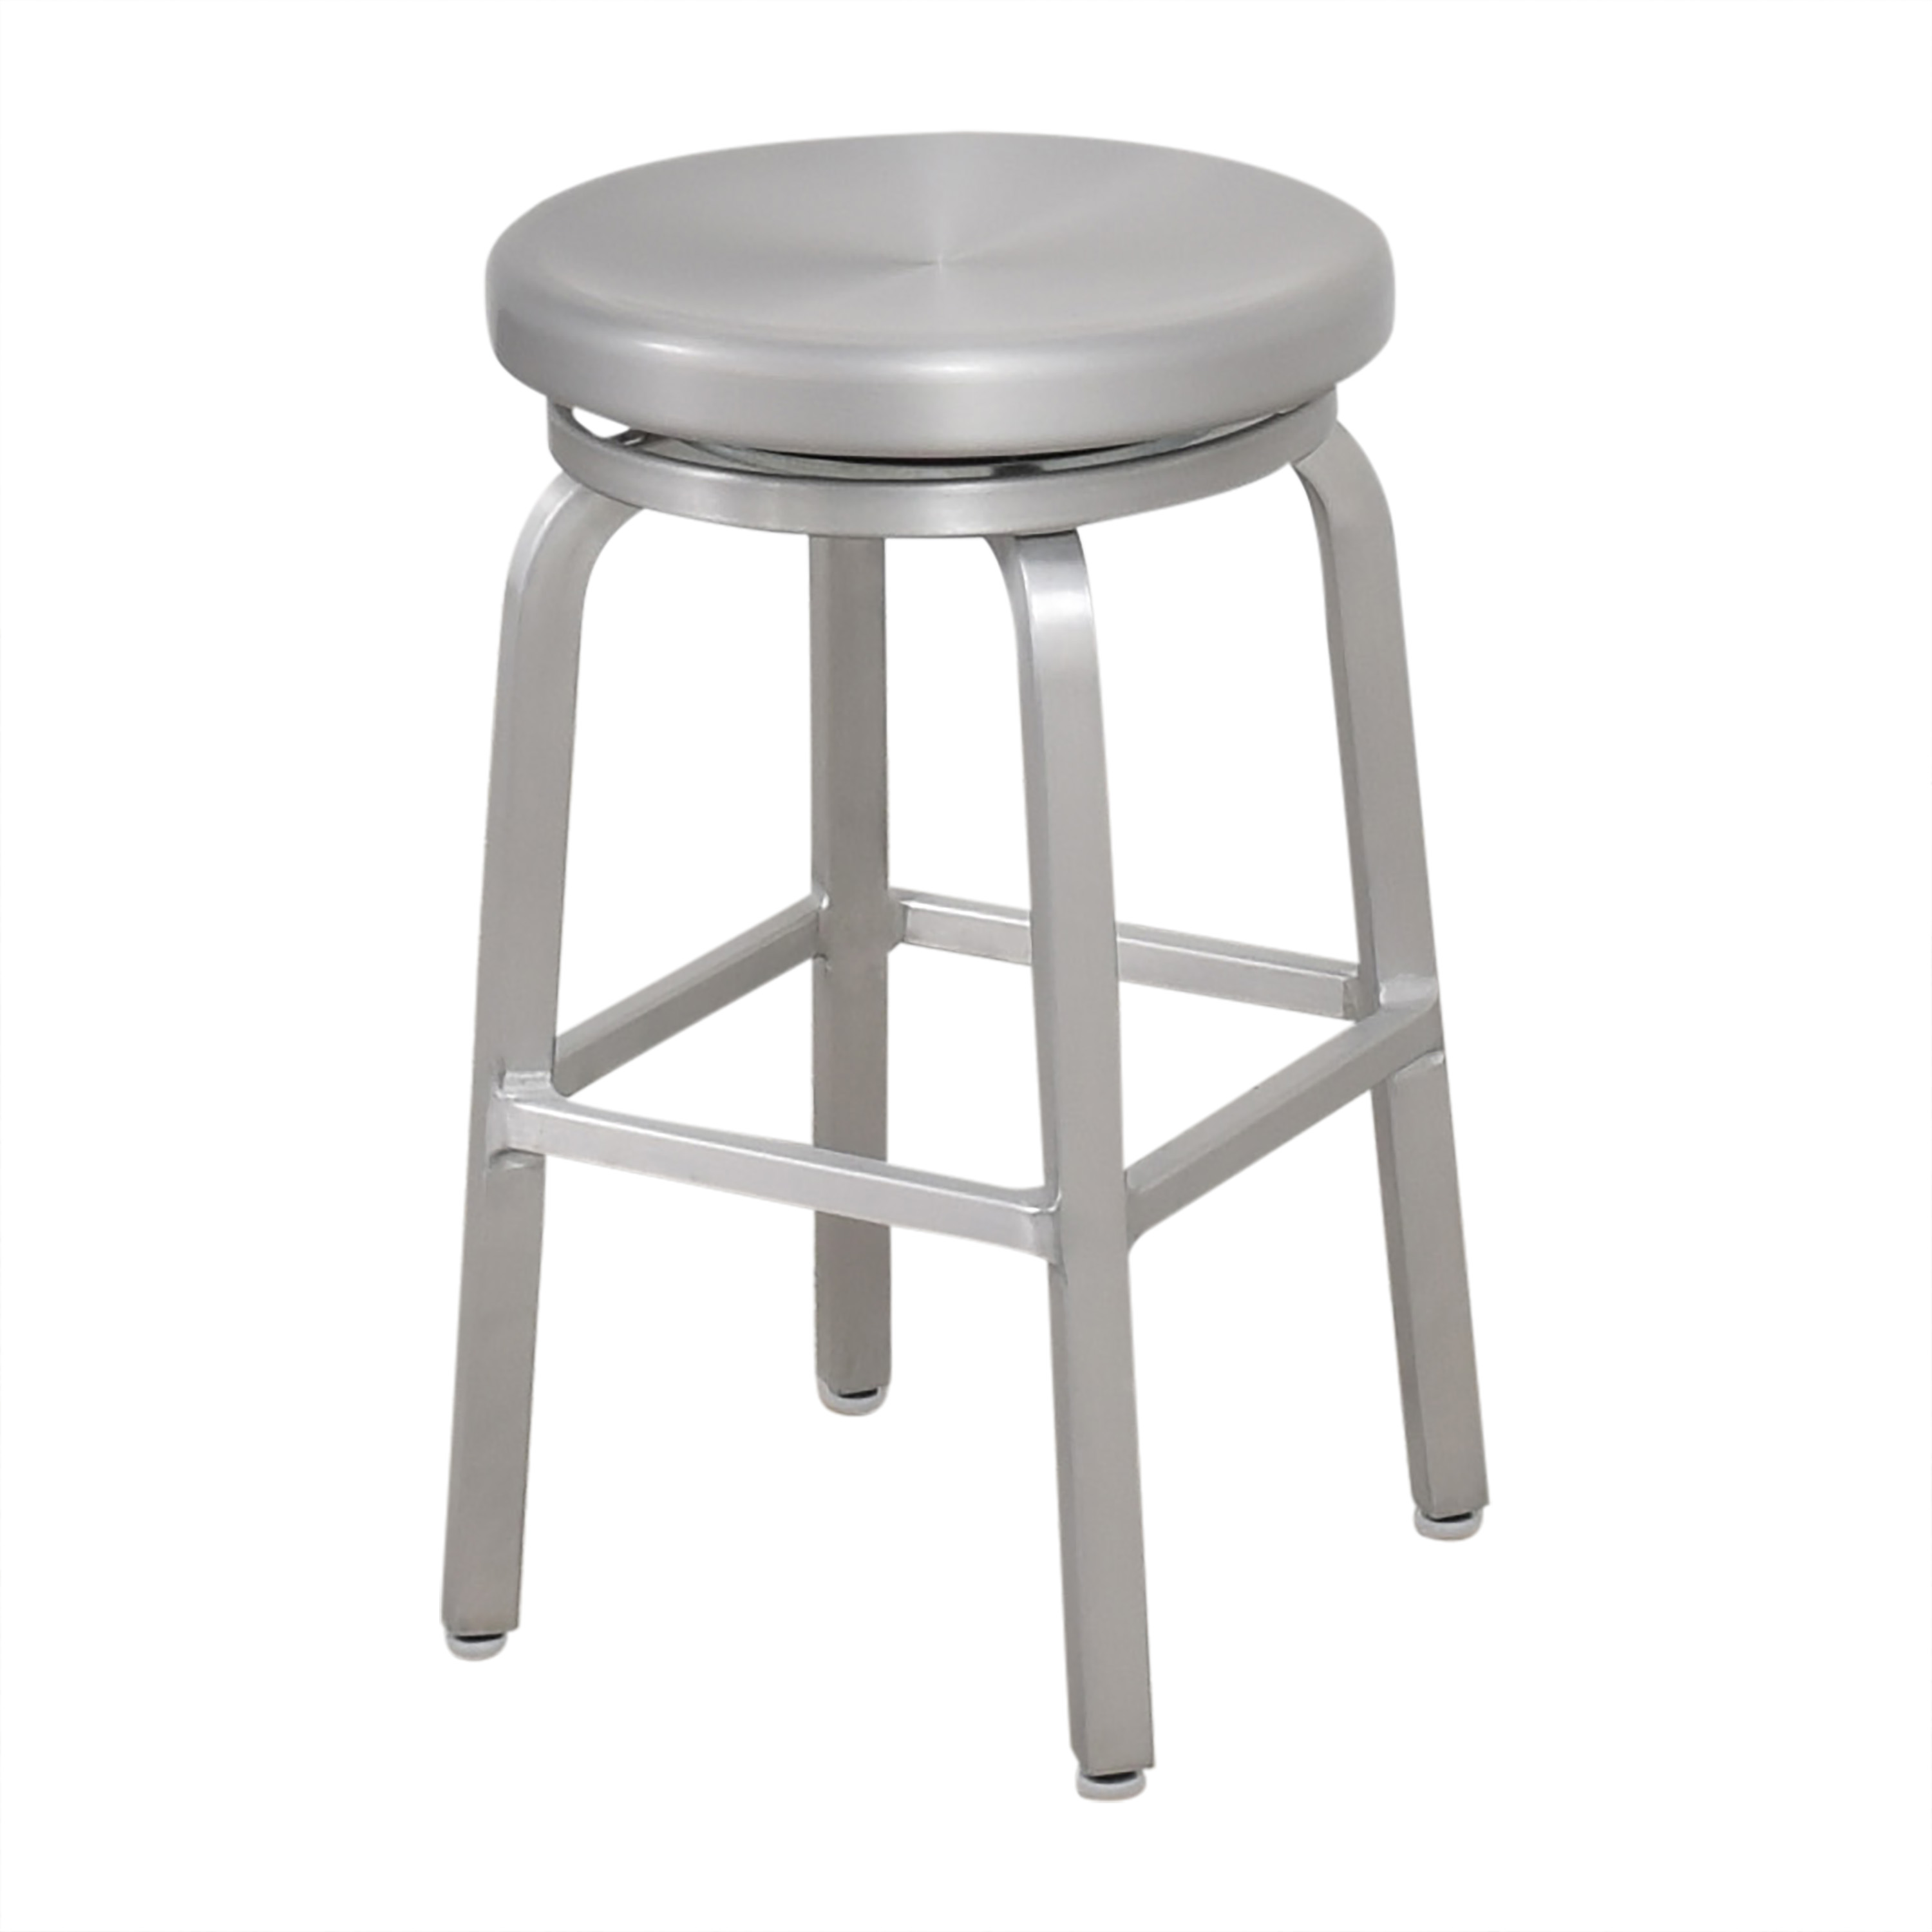 buy Crate & Barrel Spin Swivel Backless Counter Stools Crate & Barrel Stools